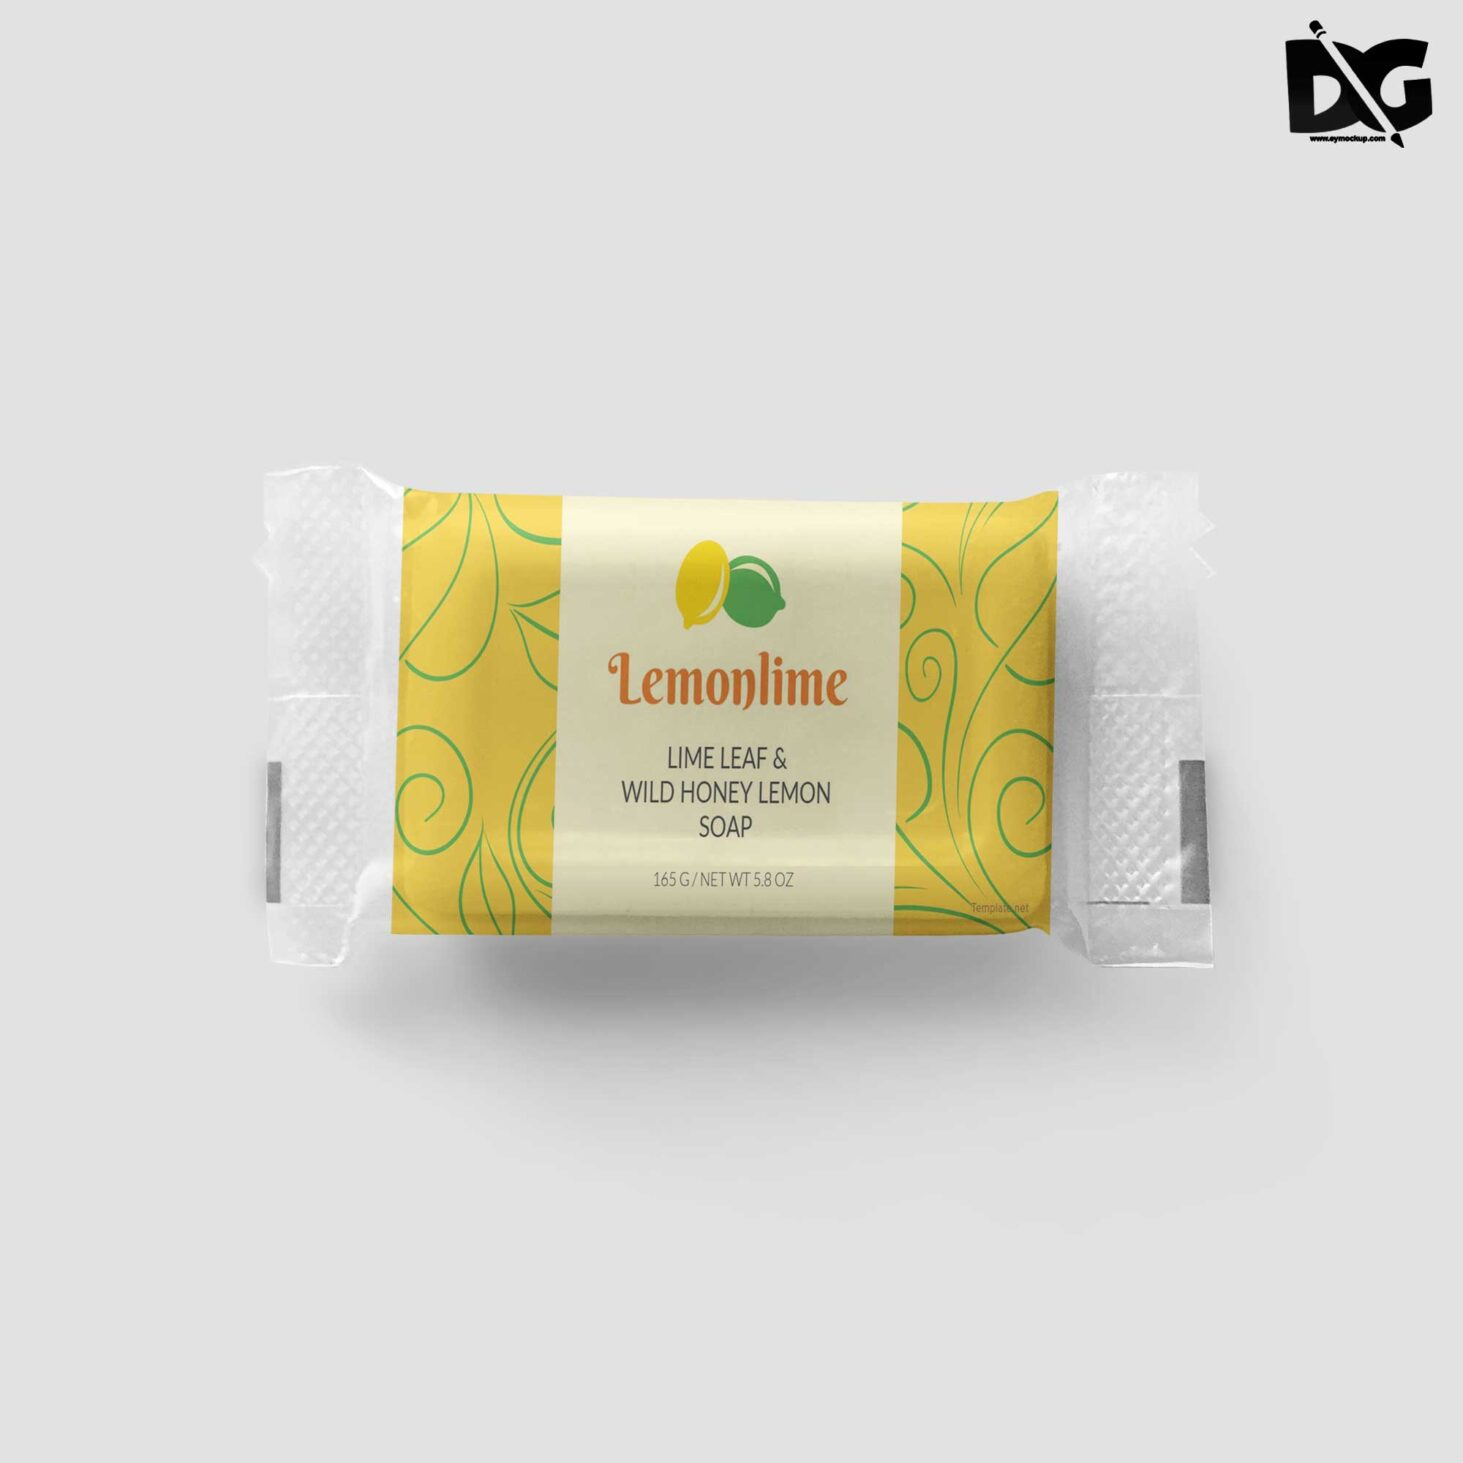 Free Soap Label Template Download from freepsdmock-up.com